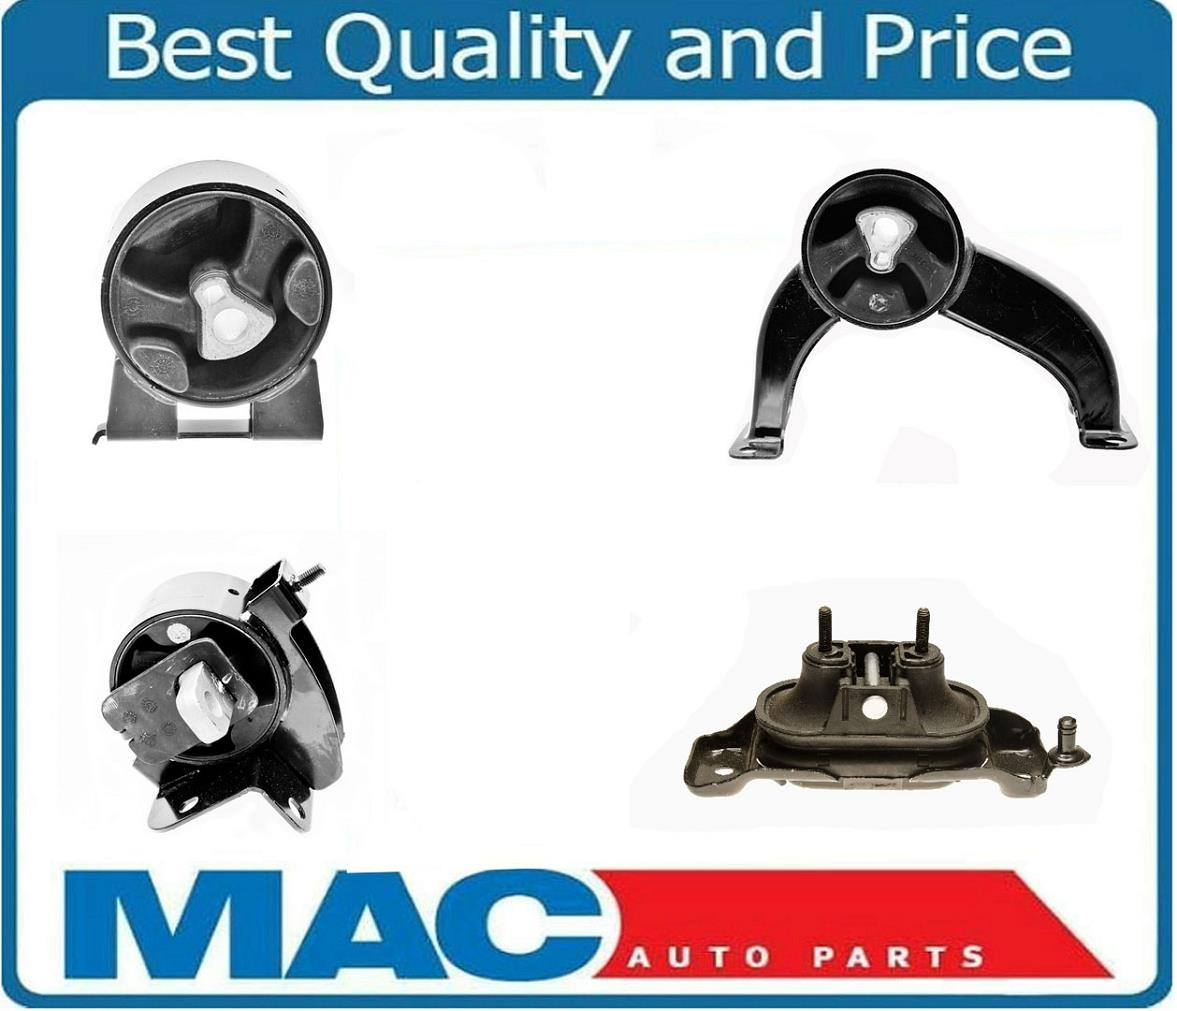 9M1141 4pc Motor Mounts fit Dodge Caravan 2008-2010 3.3L 3.8L 4.0L Engine AUTO